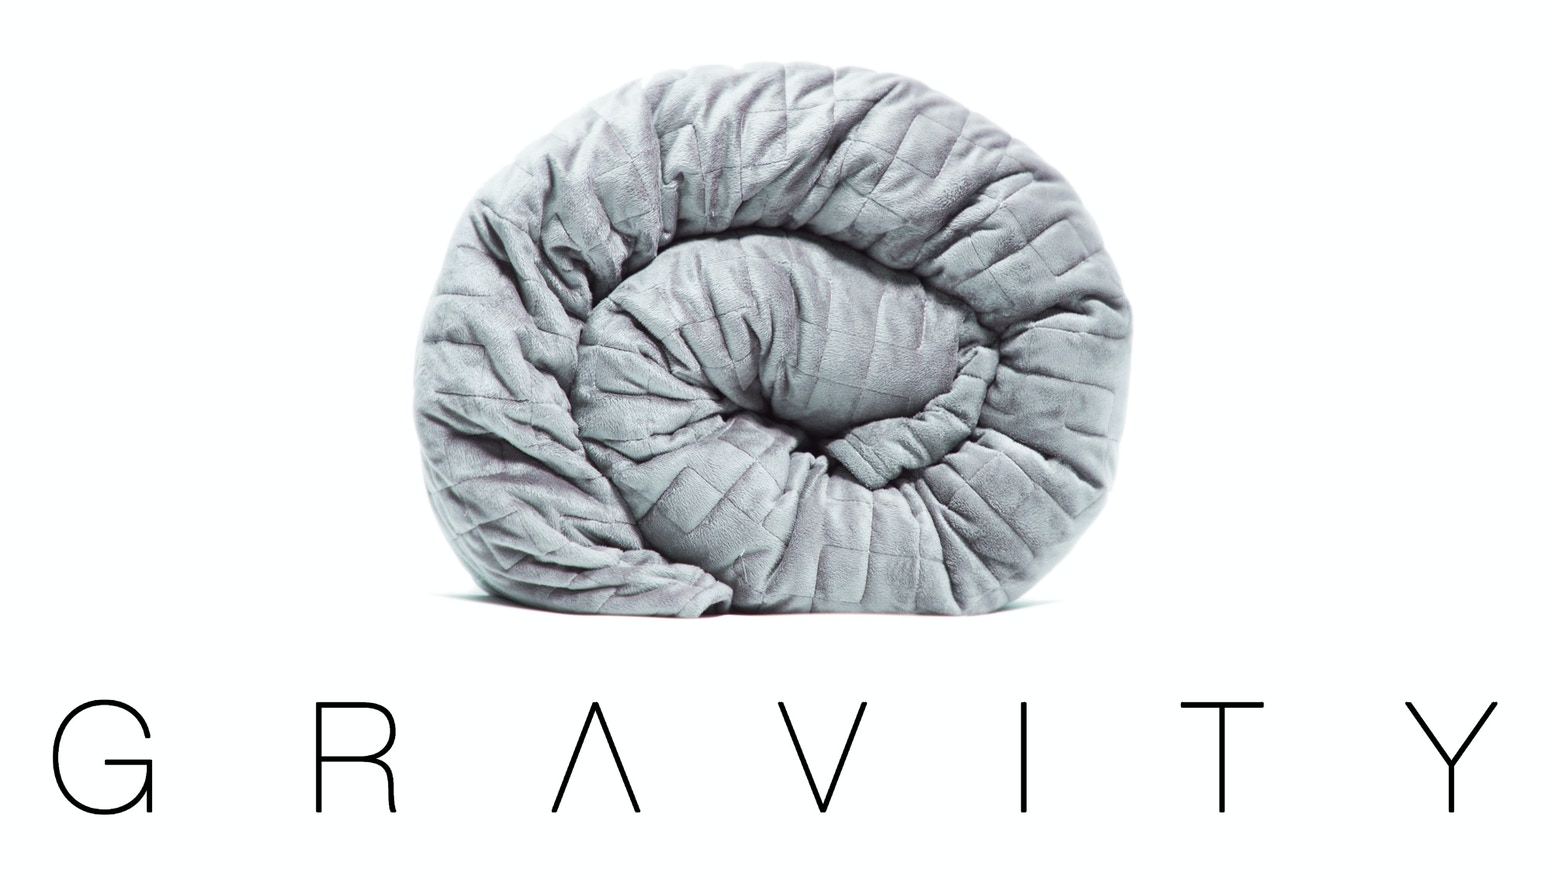 A weighted blanket engineered to be 10% of your body weight to naturally reduce stress and increase relaxation.